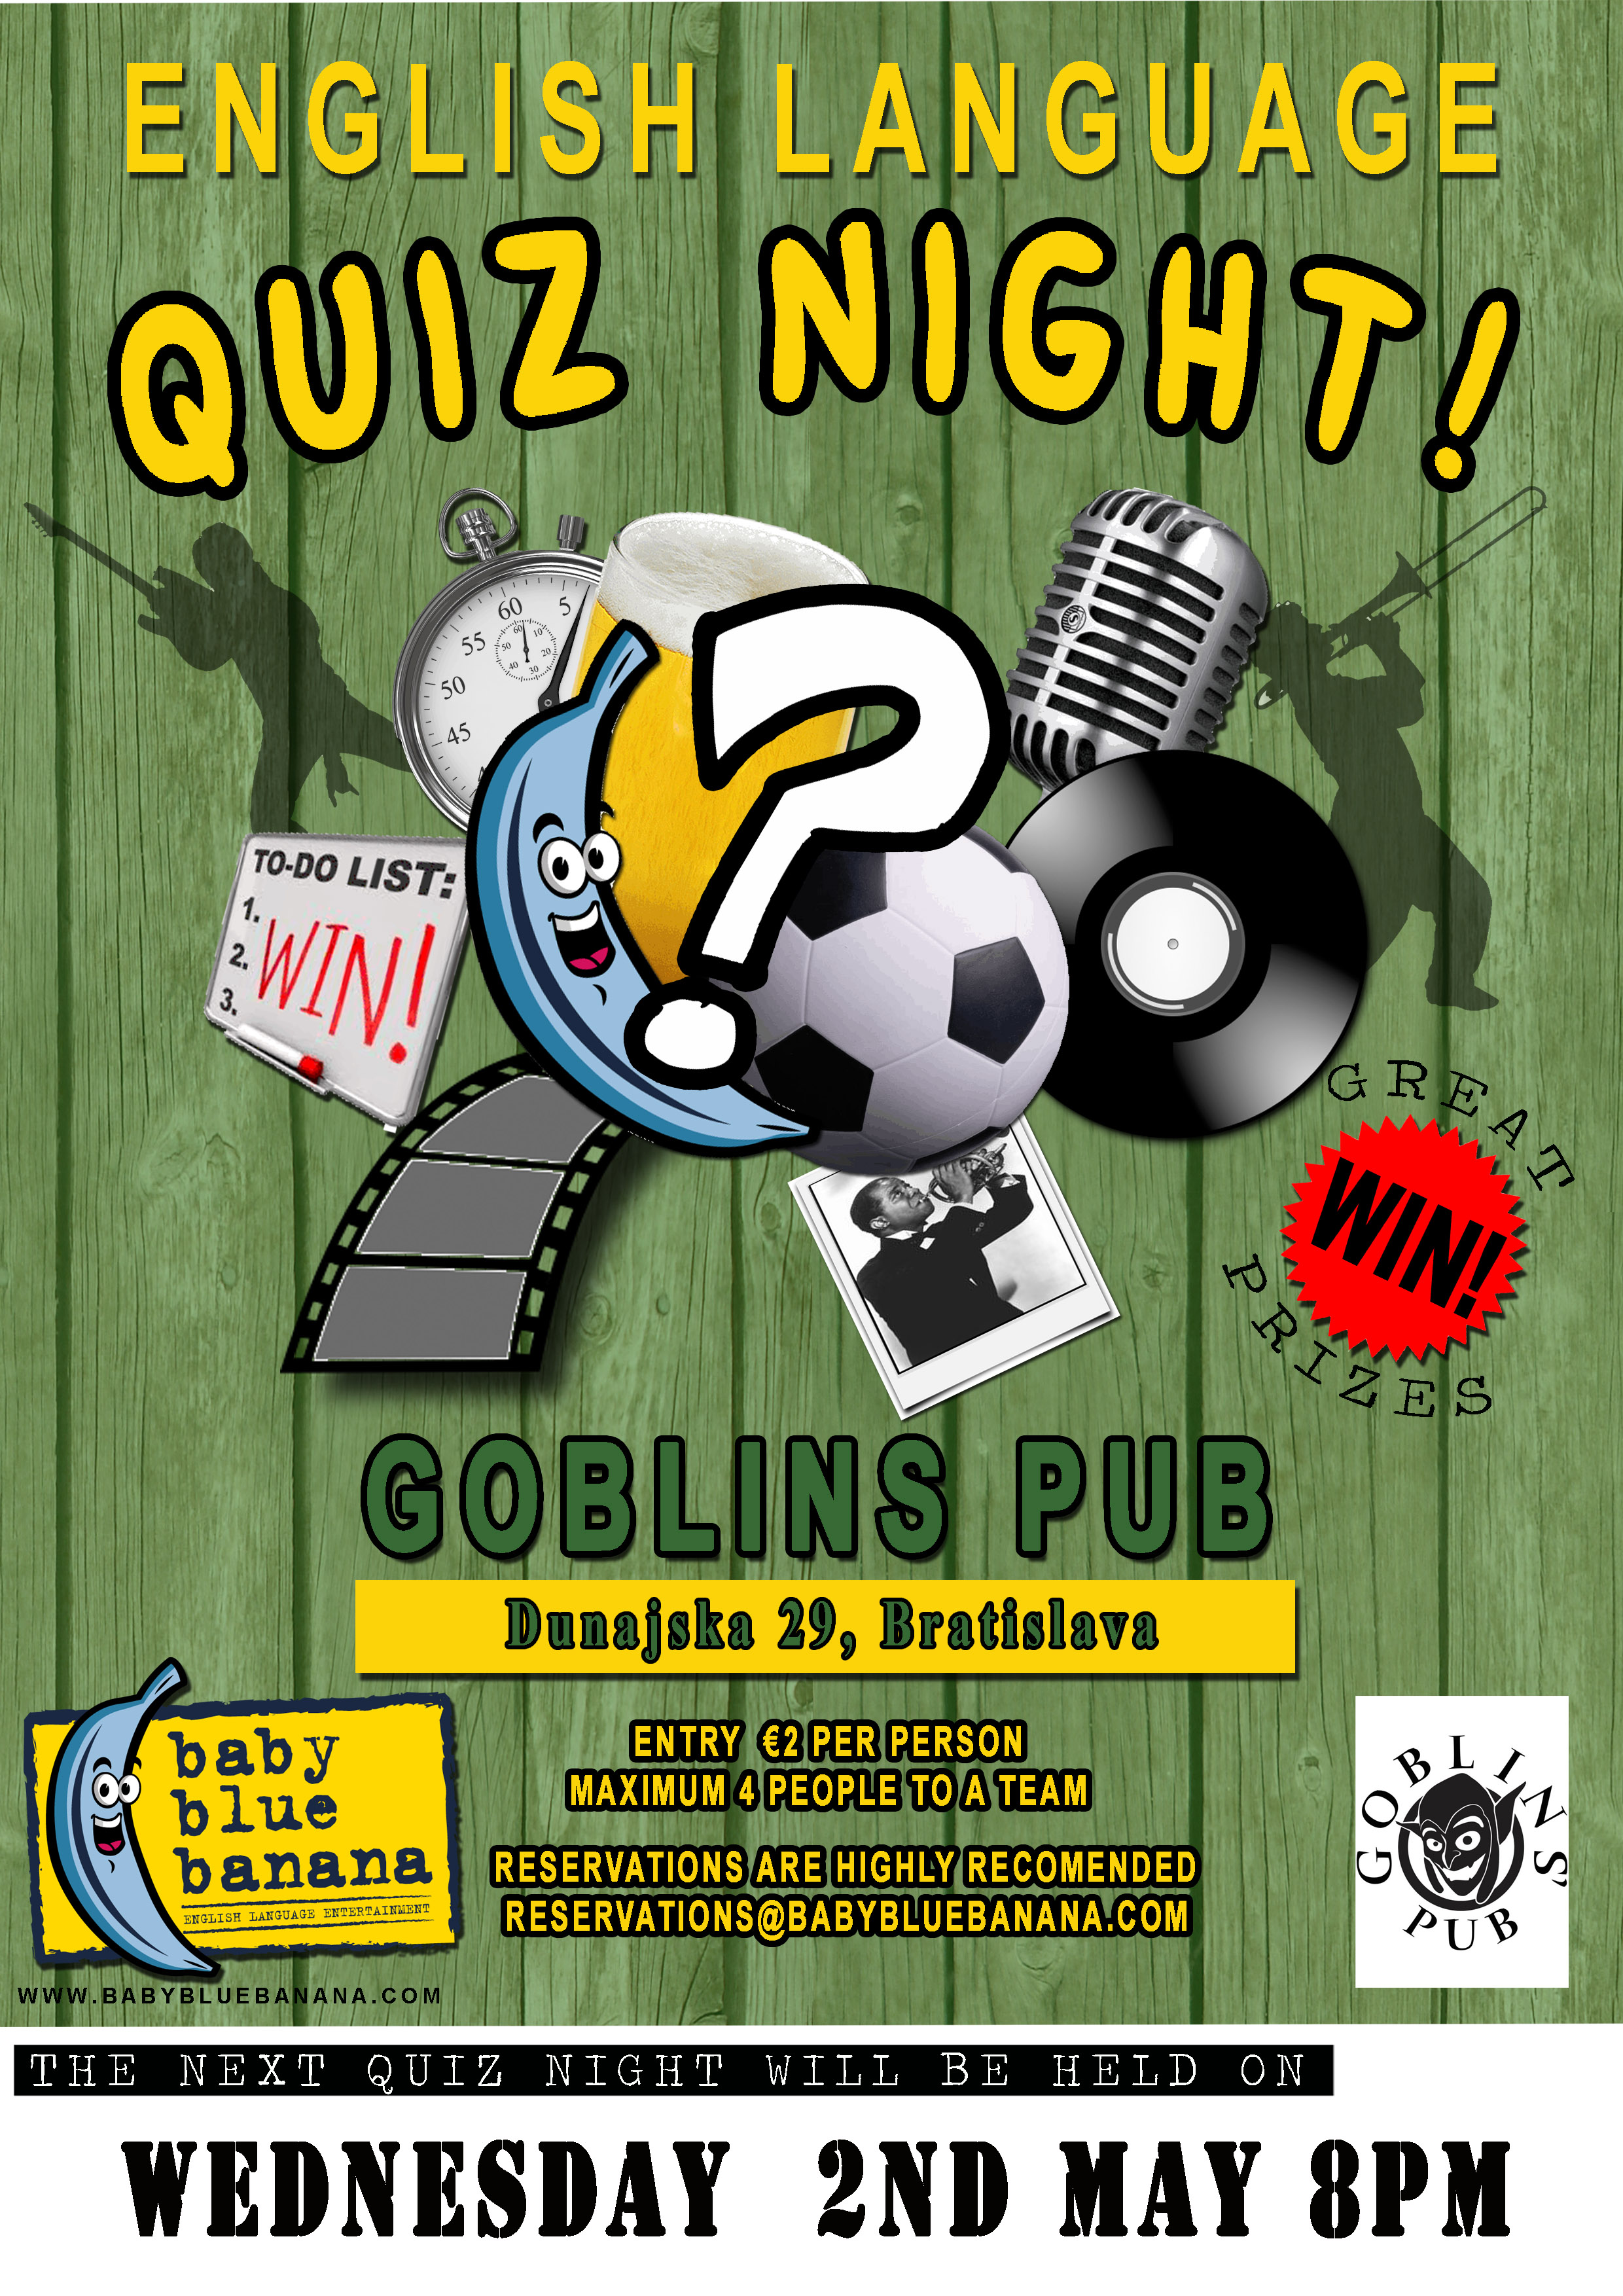 Dated Quiz Poster Goblins The Daily Slovak News